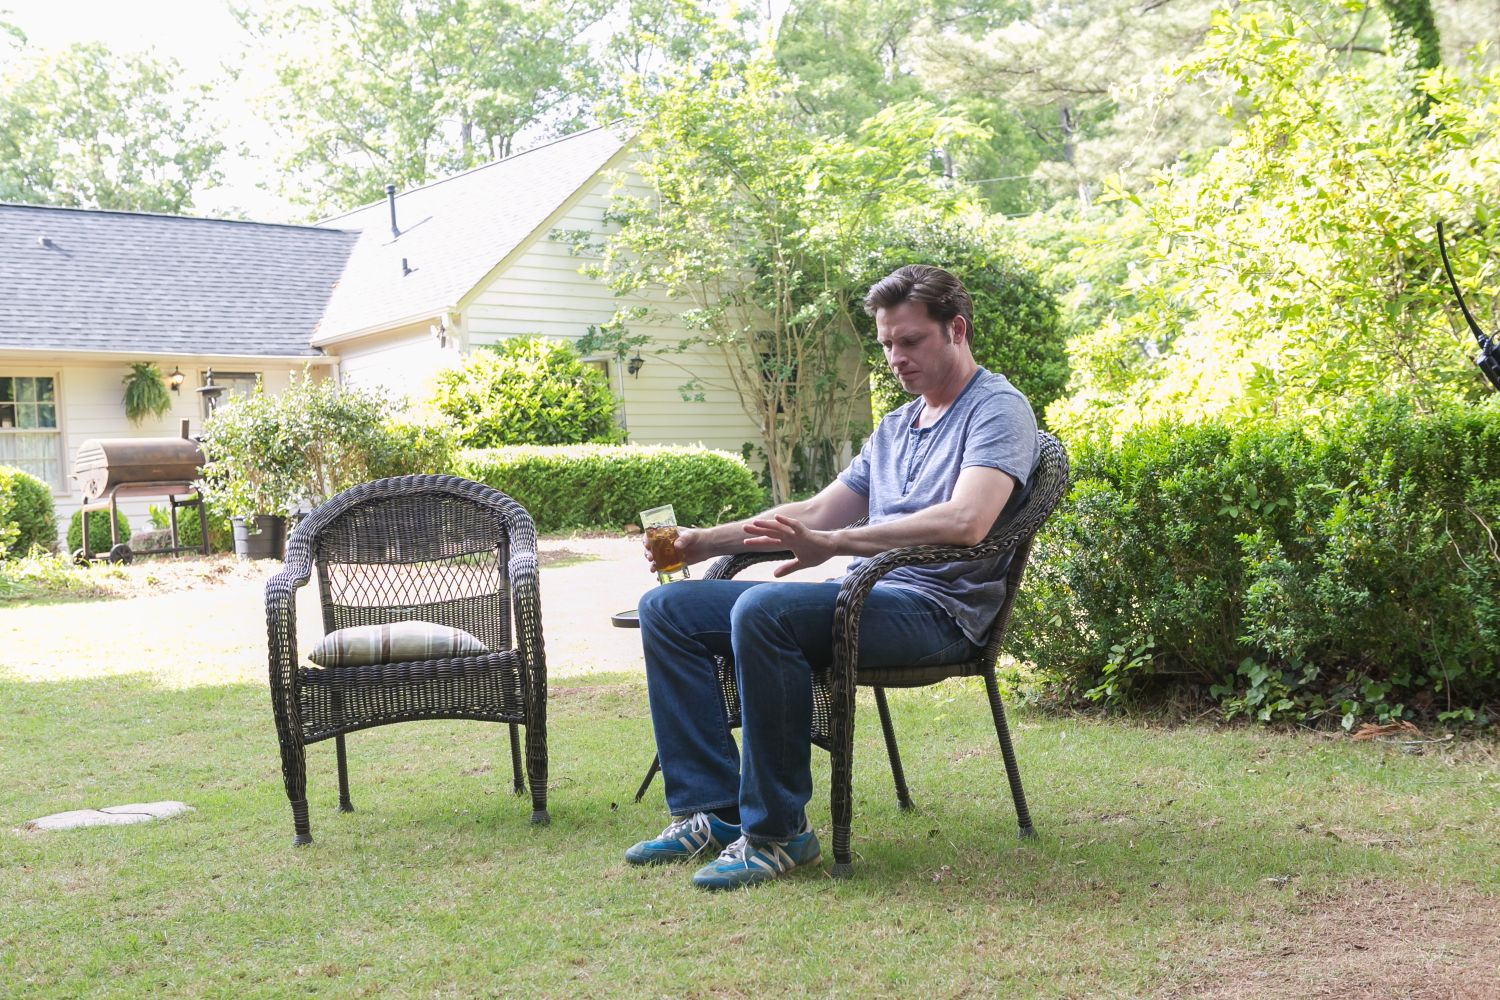 Rectify - 02x10 - Unhinged